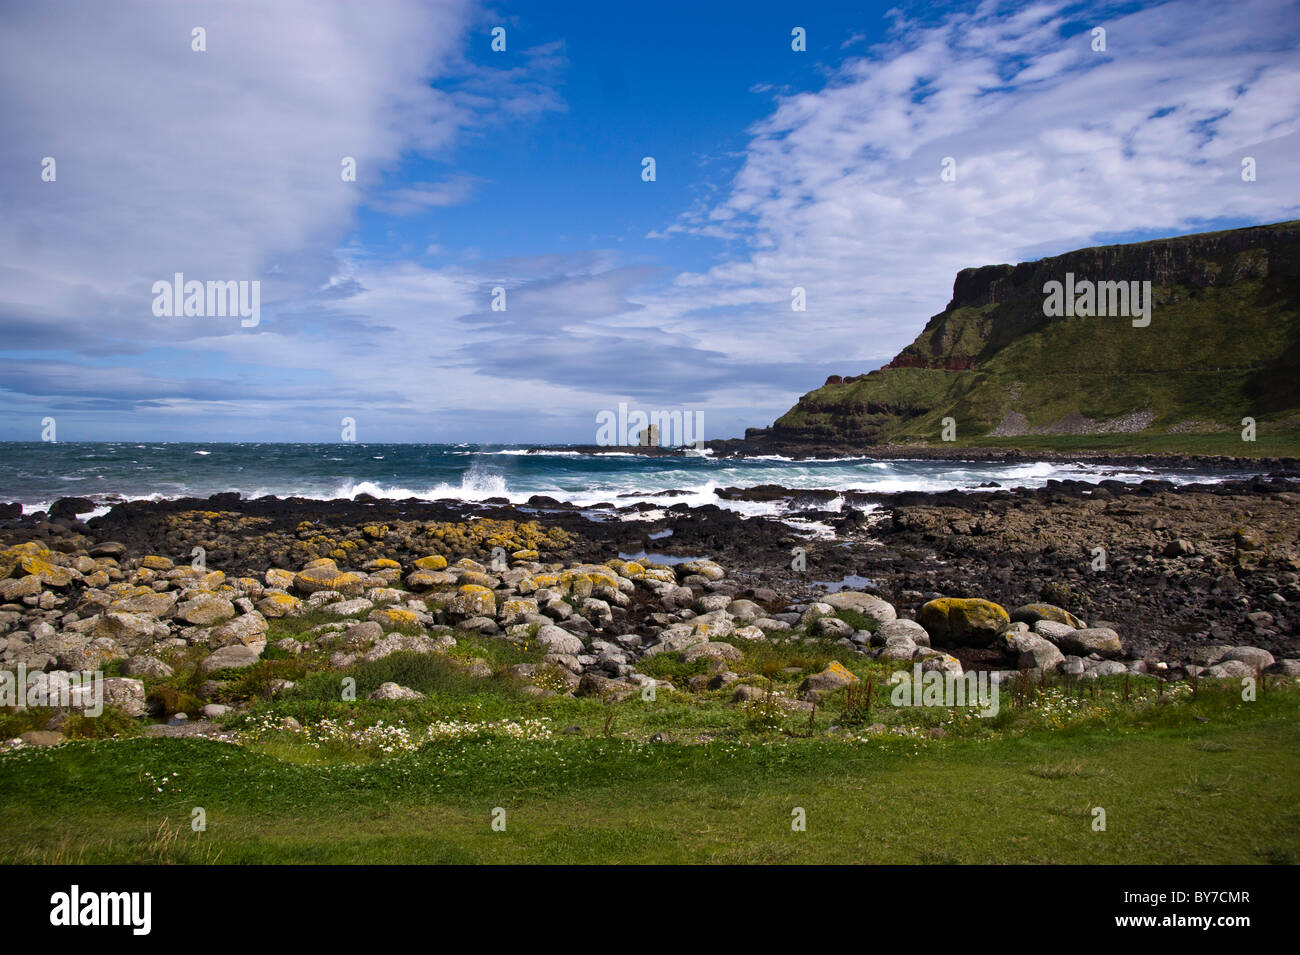 Giant's Causeway, Northern Ireland, County Antrim in a sunny day with blue sky and waves crashing on the rocks - Stock Image